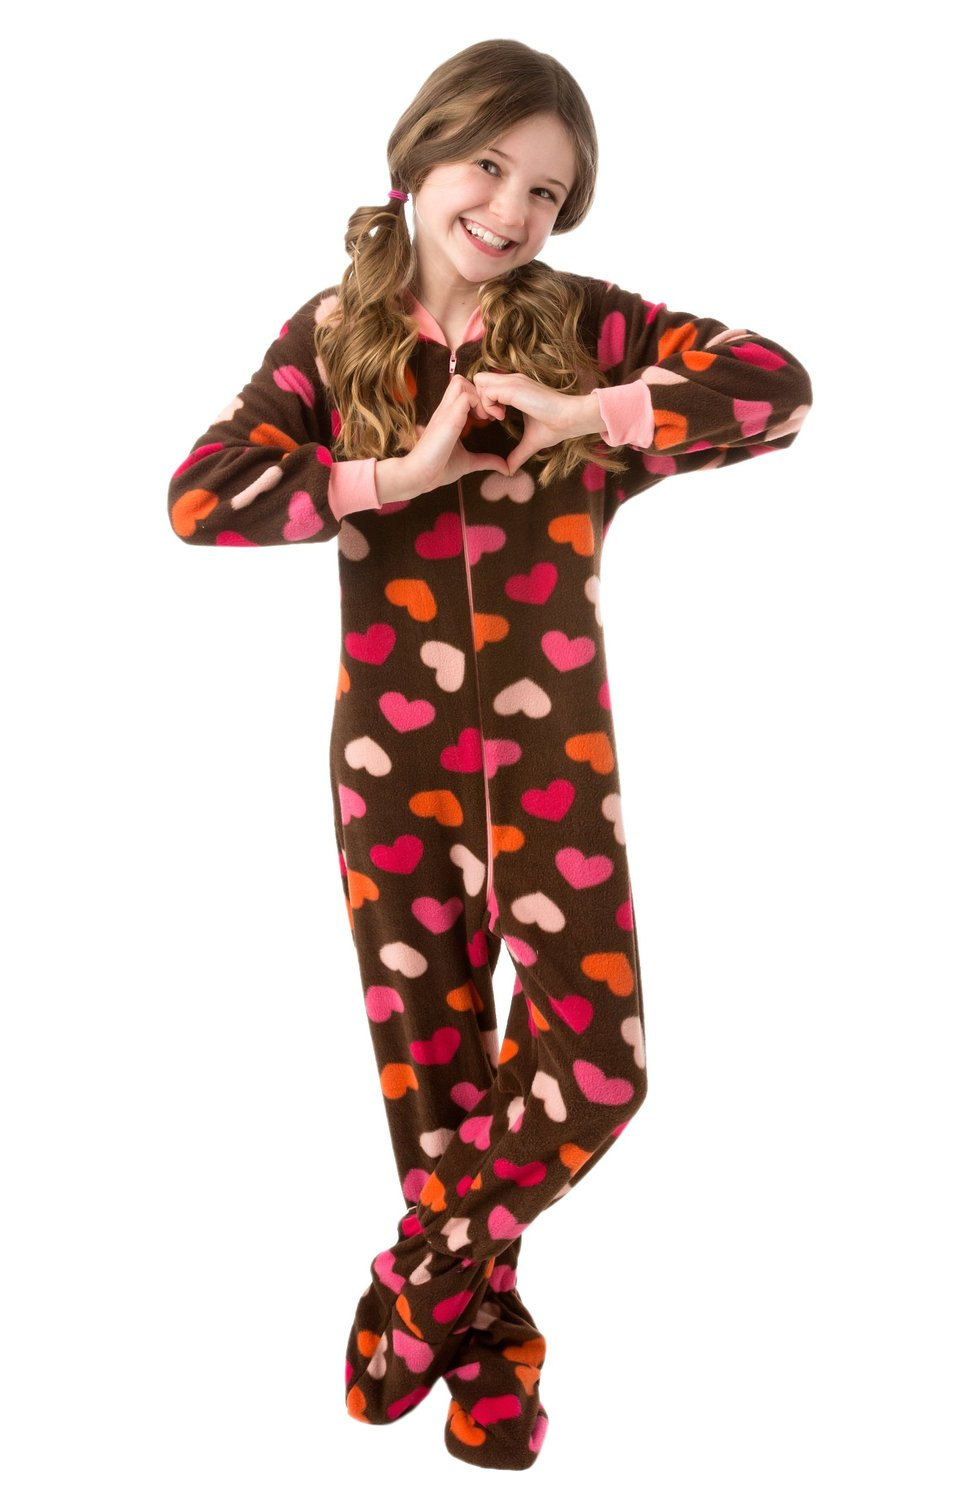 d27c11ed4b24 Get Quotations · Big Feet Pjs Kids Footed Onesie Chocolate Brown with  Hearts Footed Pajamas